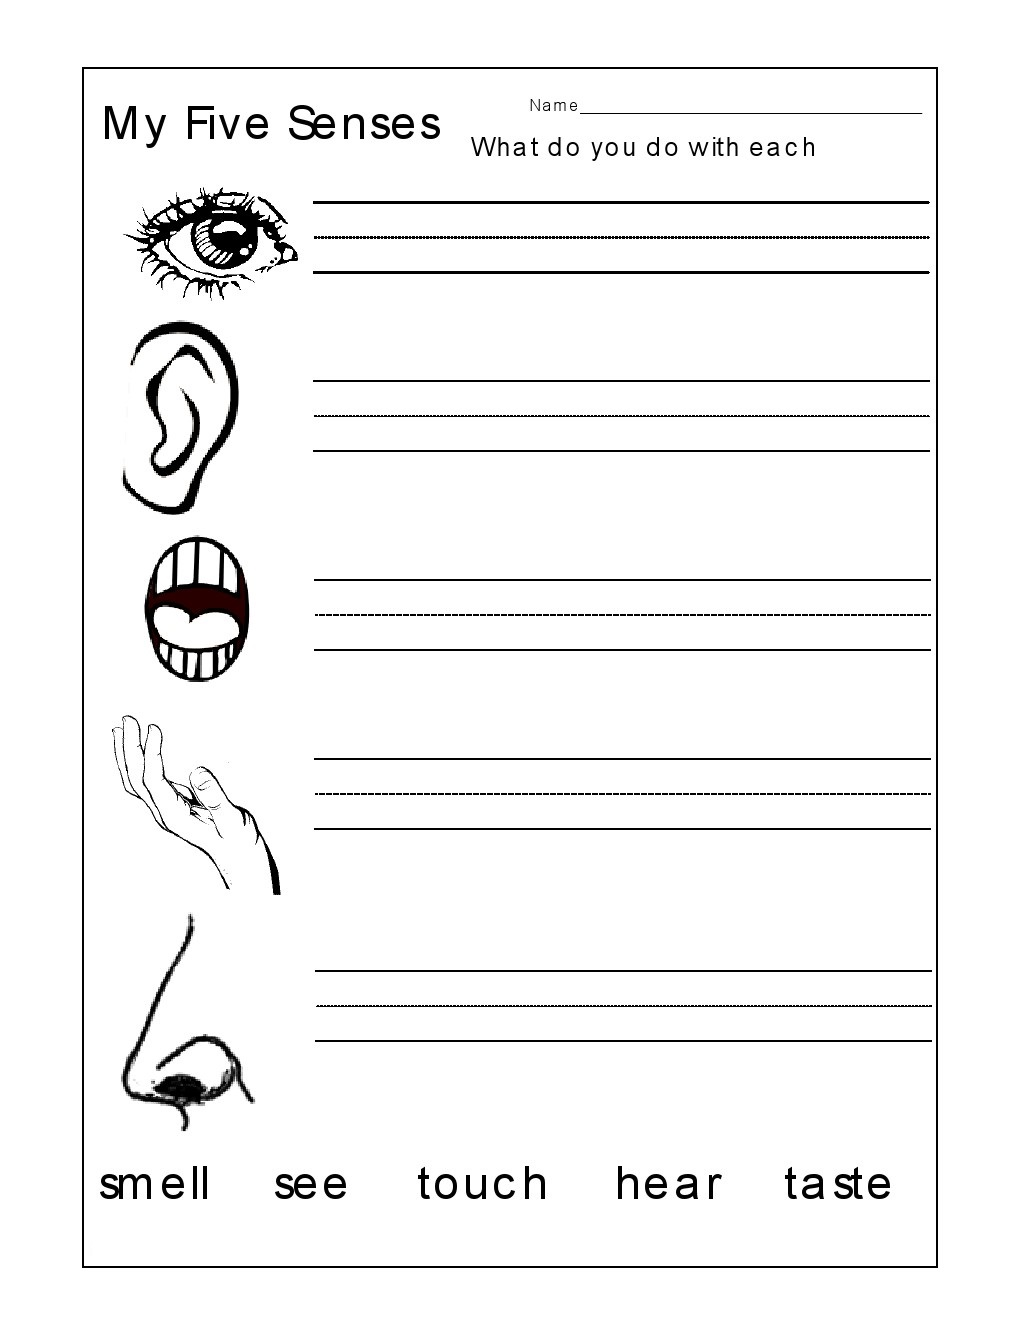 Kindergarten Worksheets Kindergarten Worksheets The 5 Senses – Five Senses Worksheets Kindergarten